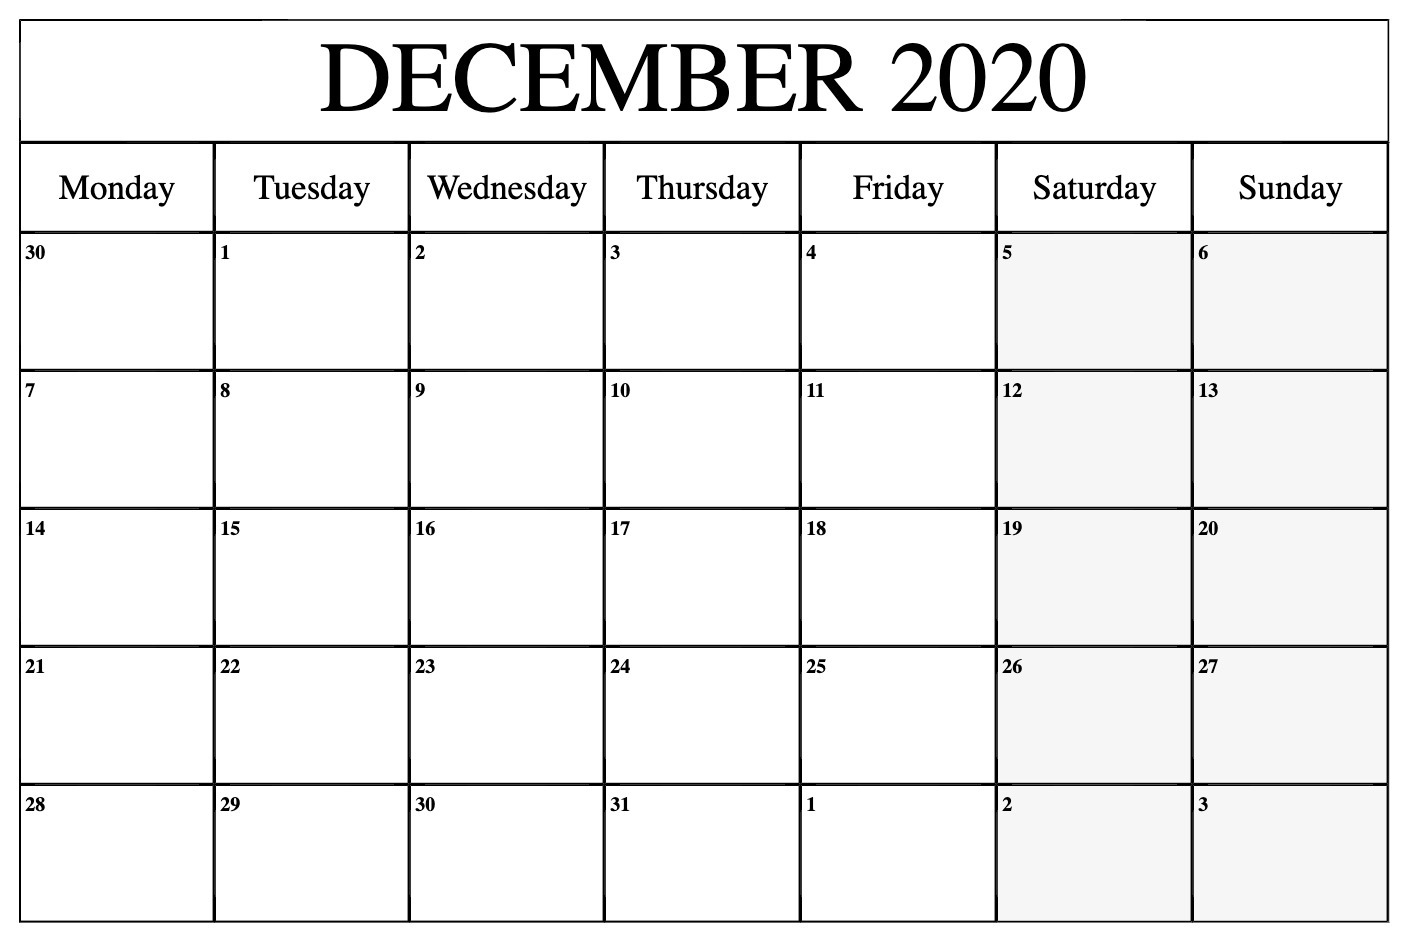 December 2020 Calendar Printable Template With Holidays